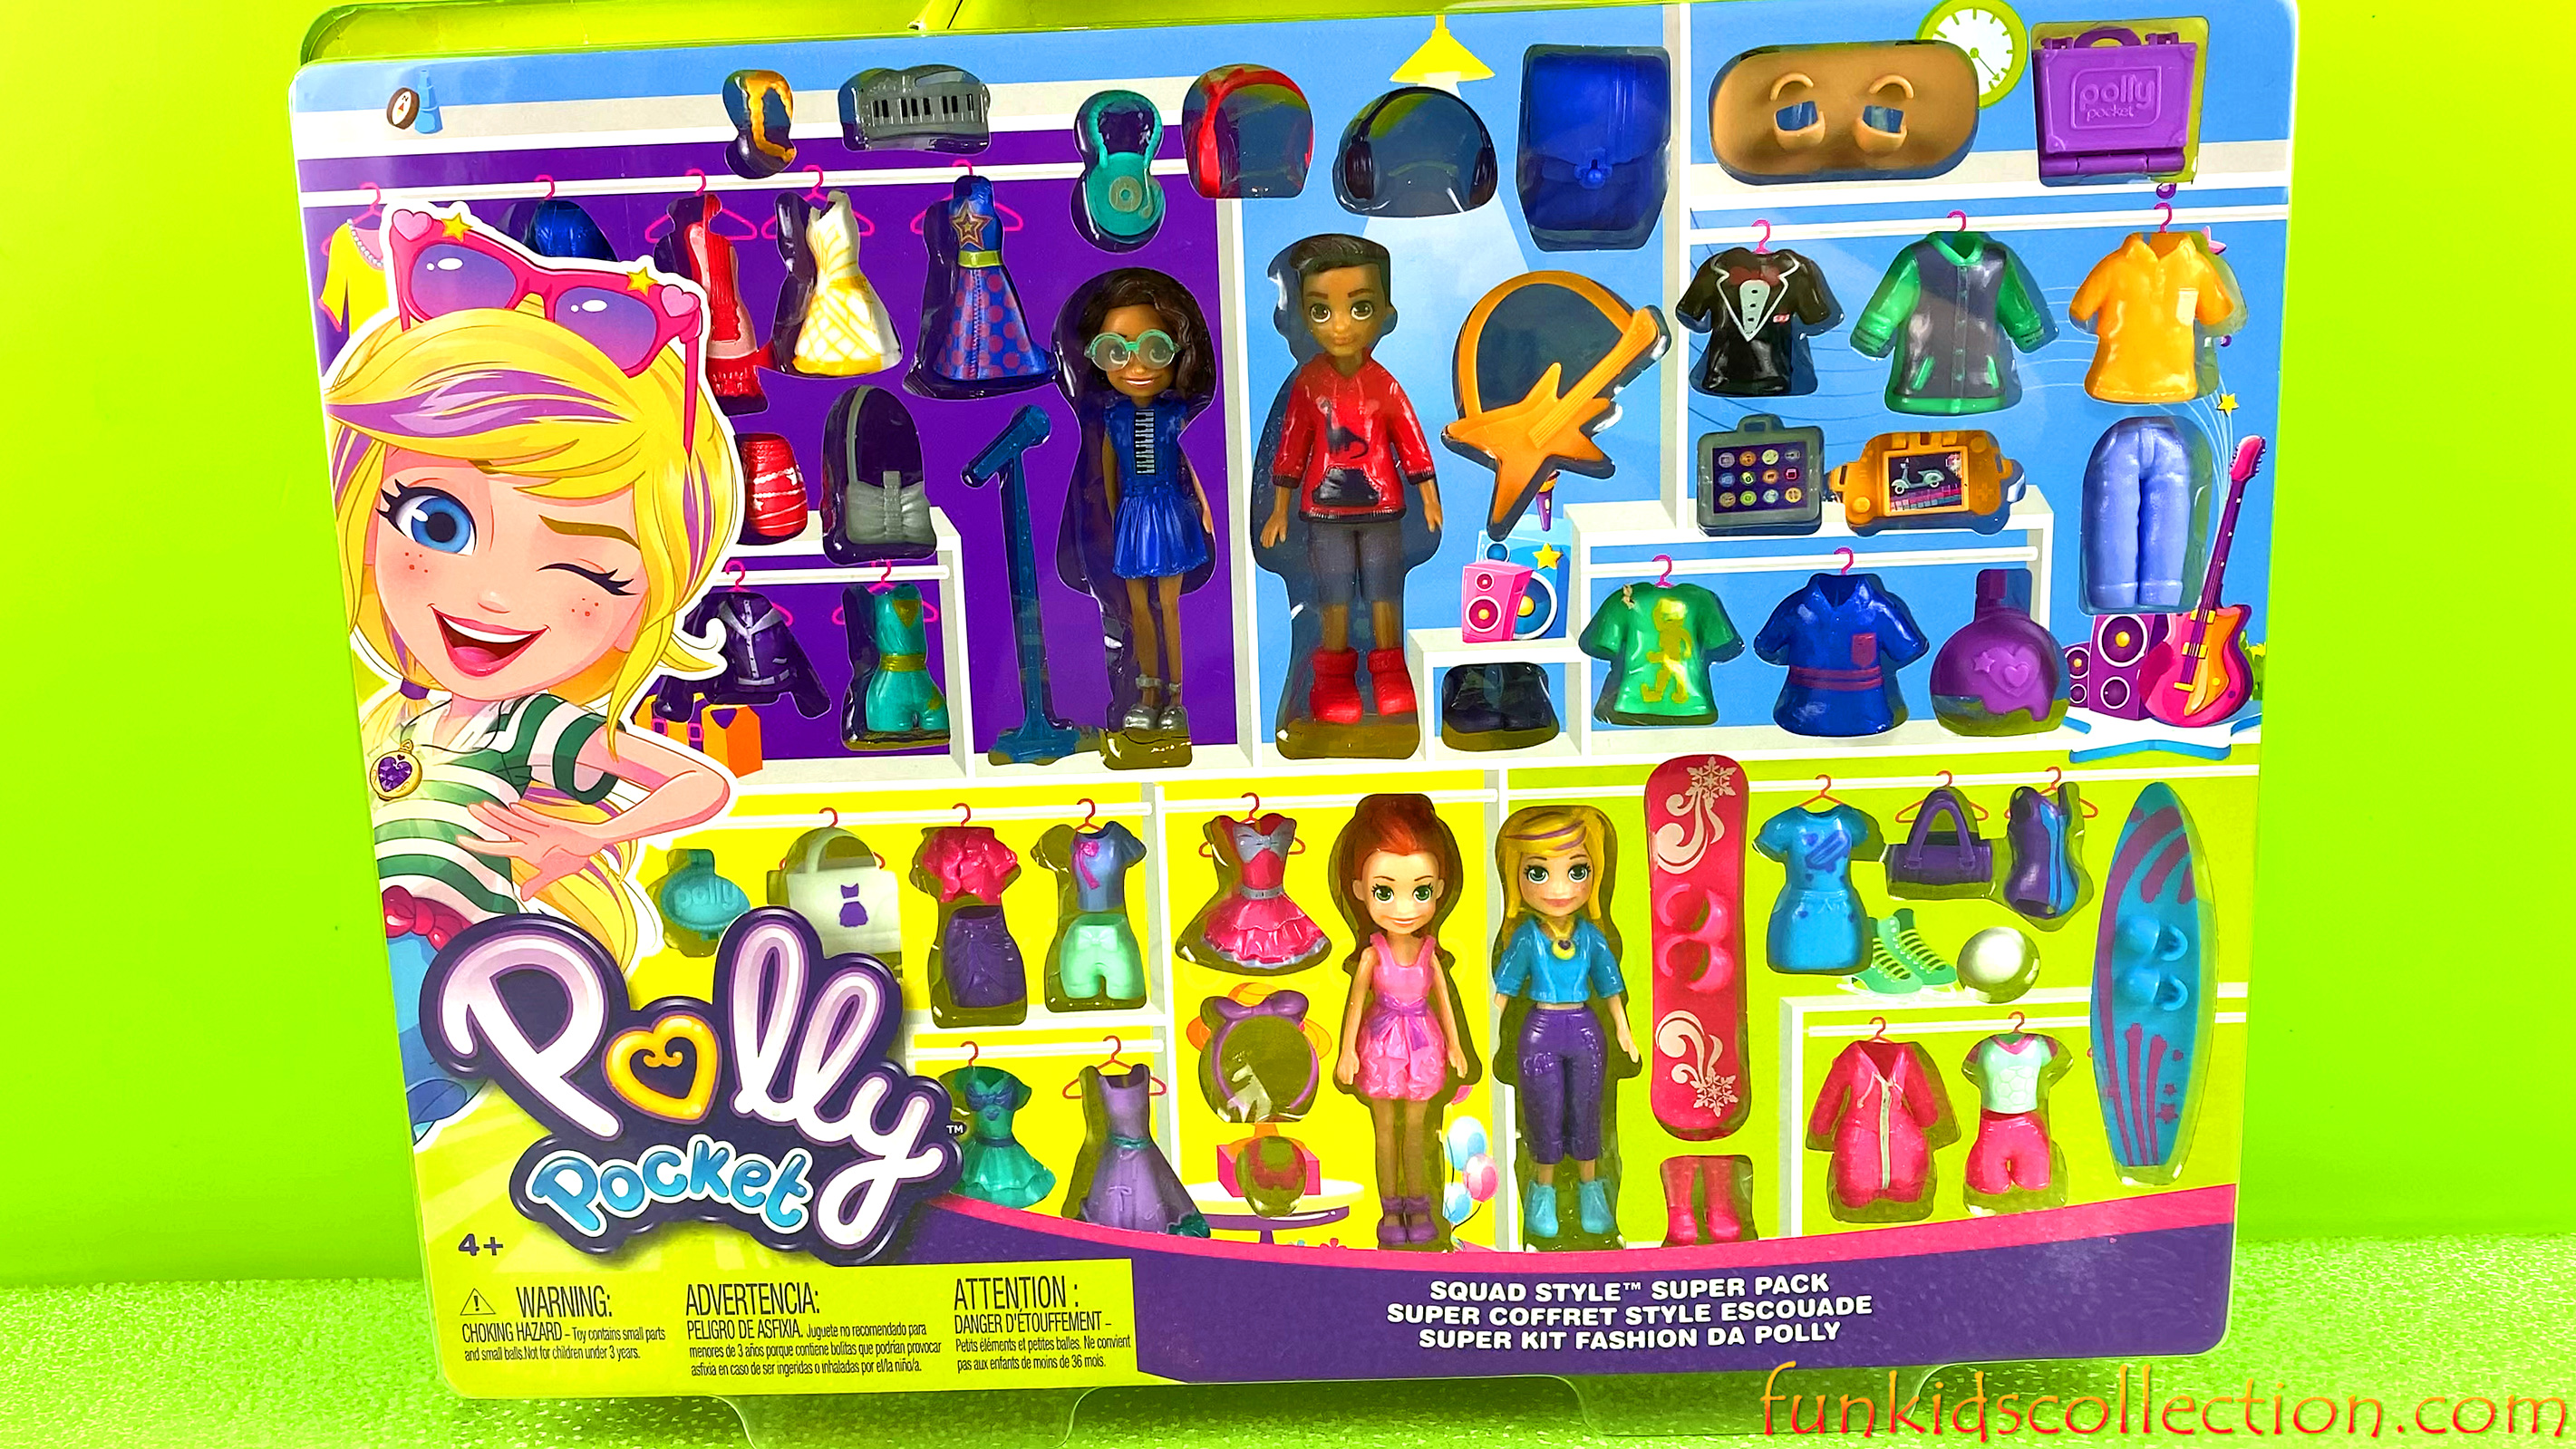 Polly Pocket Super Kit Fashion | Polly Pocket Squad Style Super Pack | EBD Toys